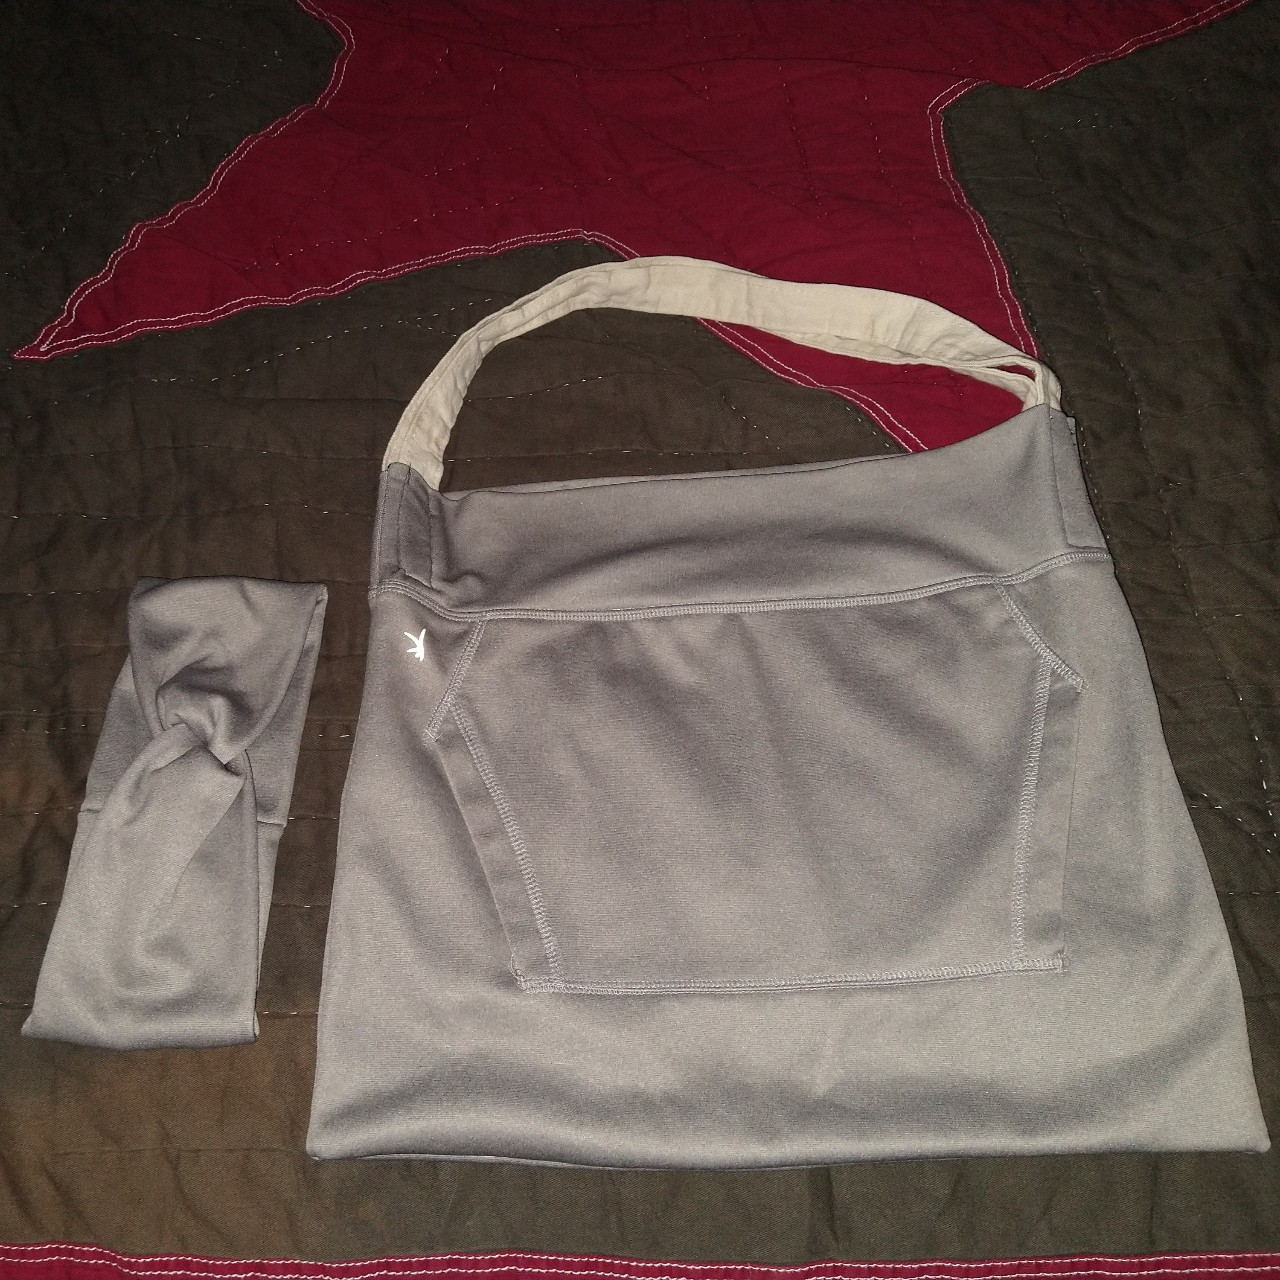 Product Image 1 - Tote bag and matching twist